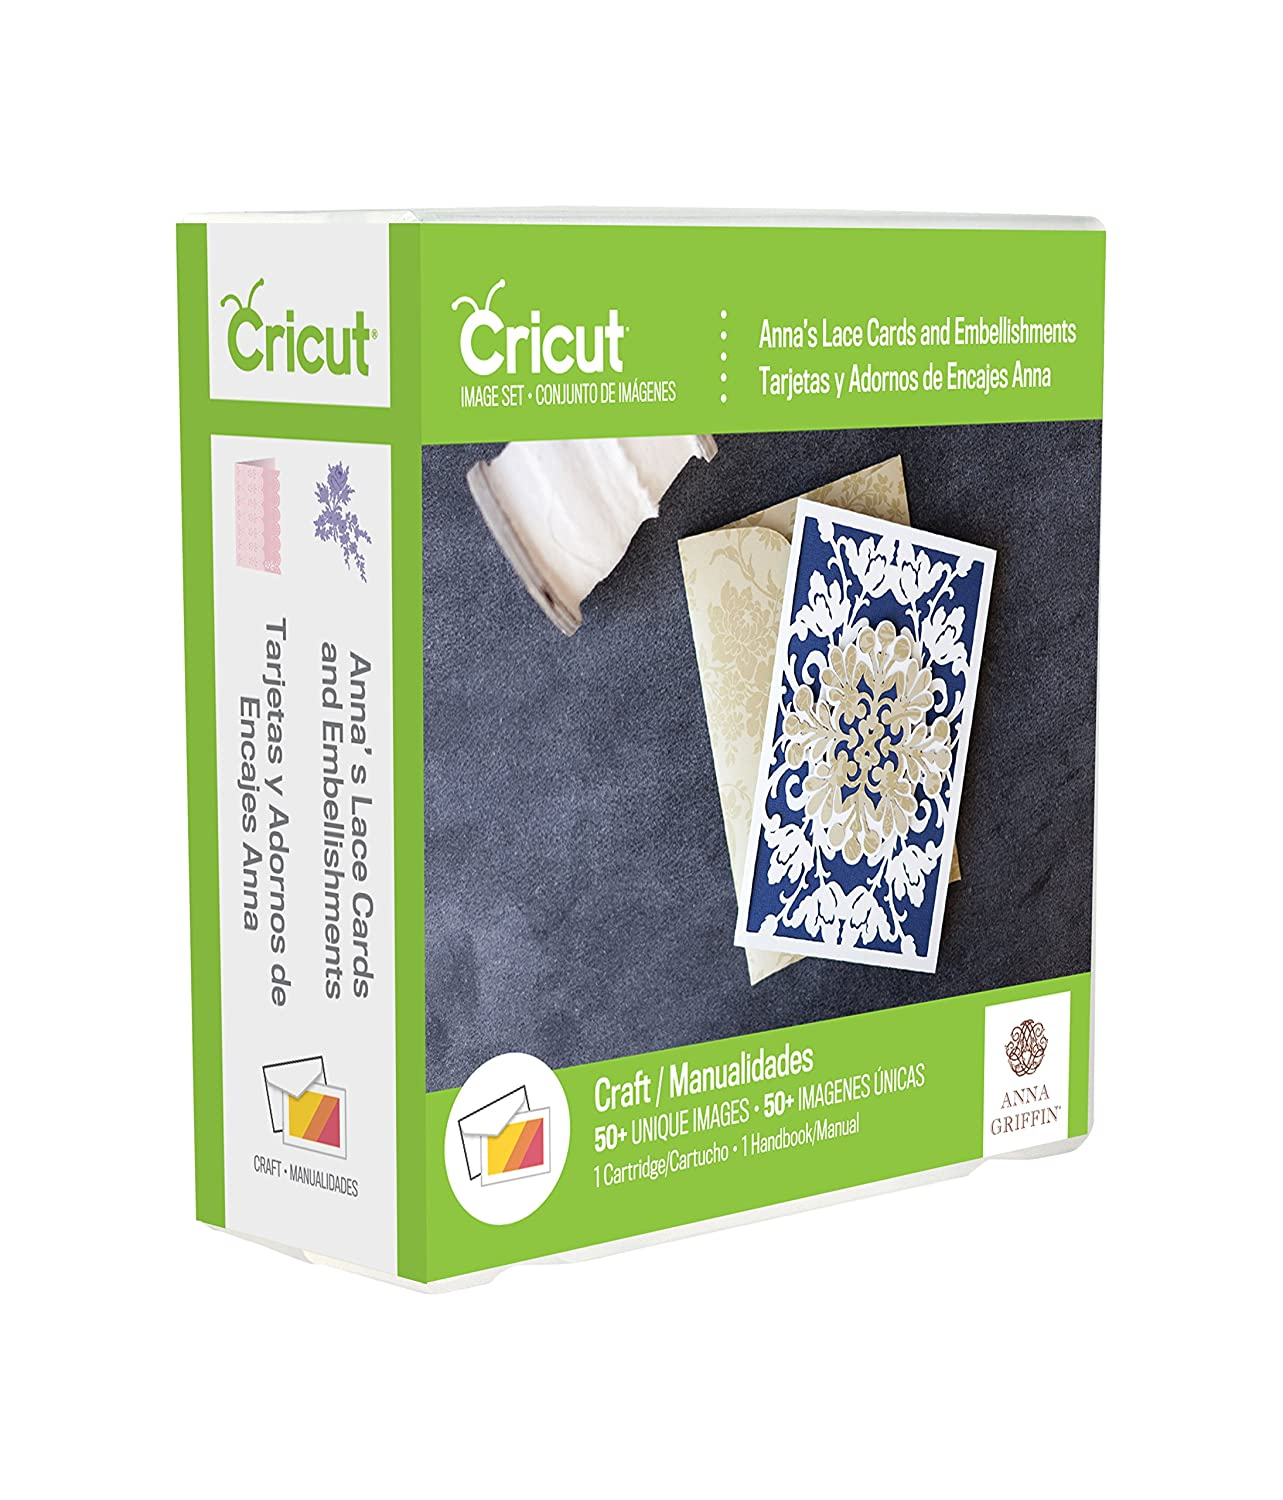 Provo Craft 2002879 Cricut Shape Cartridge-Anna Griffin Lace cards & Embellishments by Provo Craft B012TMYQWY